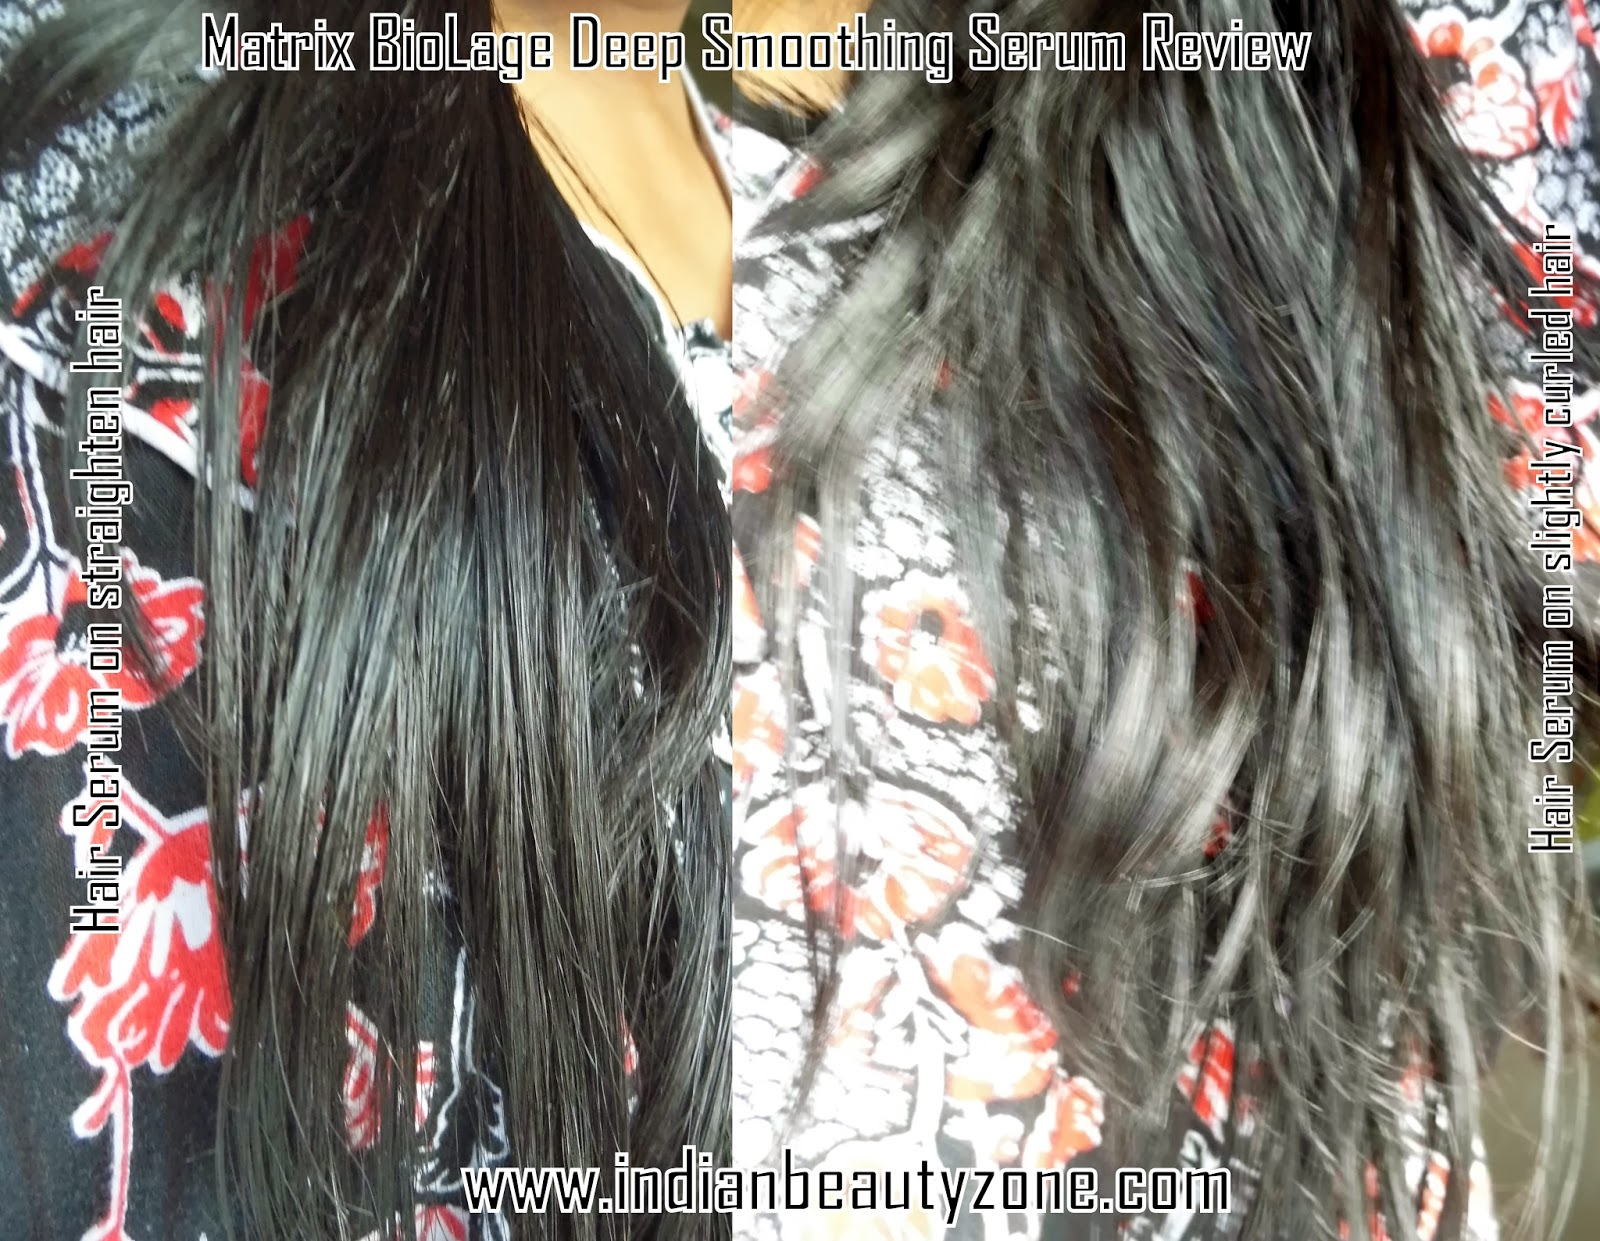 at home before blow dry protects from damage due to heat styling after blow dry for smoother shinier results party styling mix few drops with - Matrix Hair Color Reviews